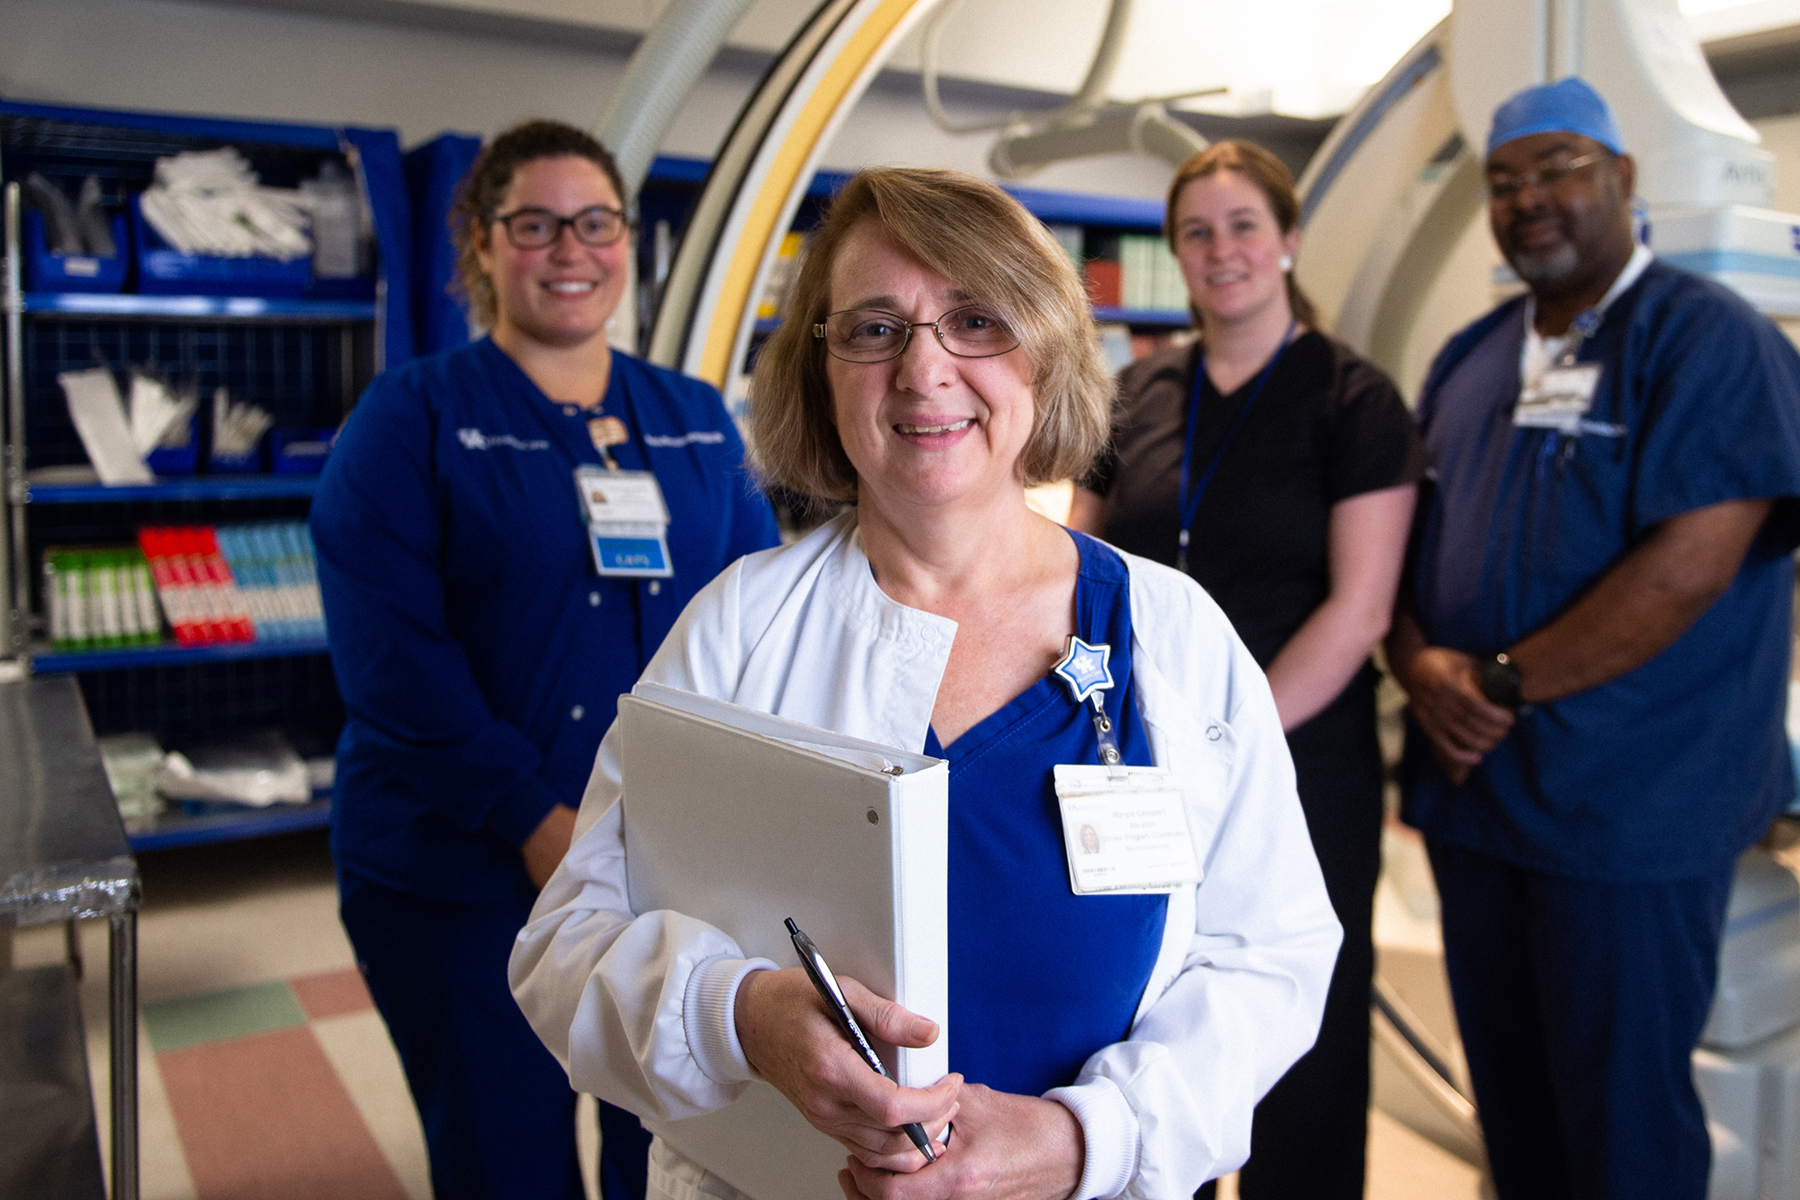 Margie Campbell holds a binder and smiles for a photo with other nurses at UK Healthcare.